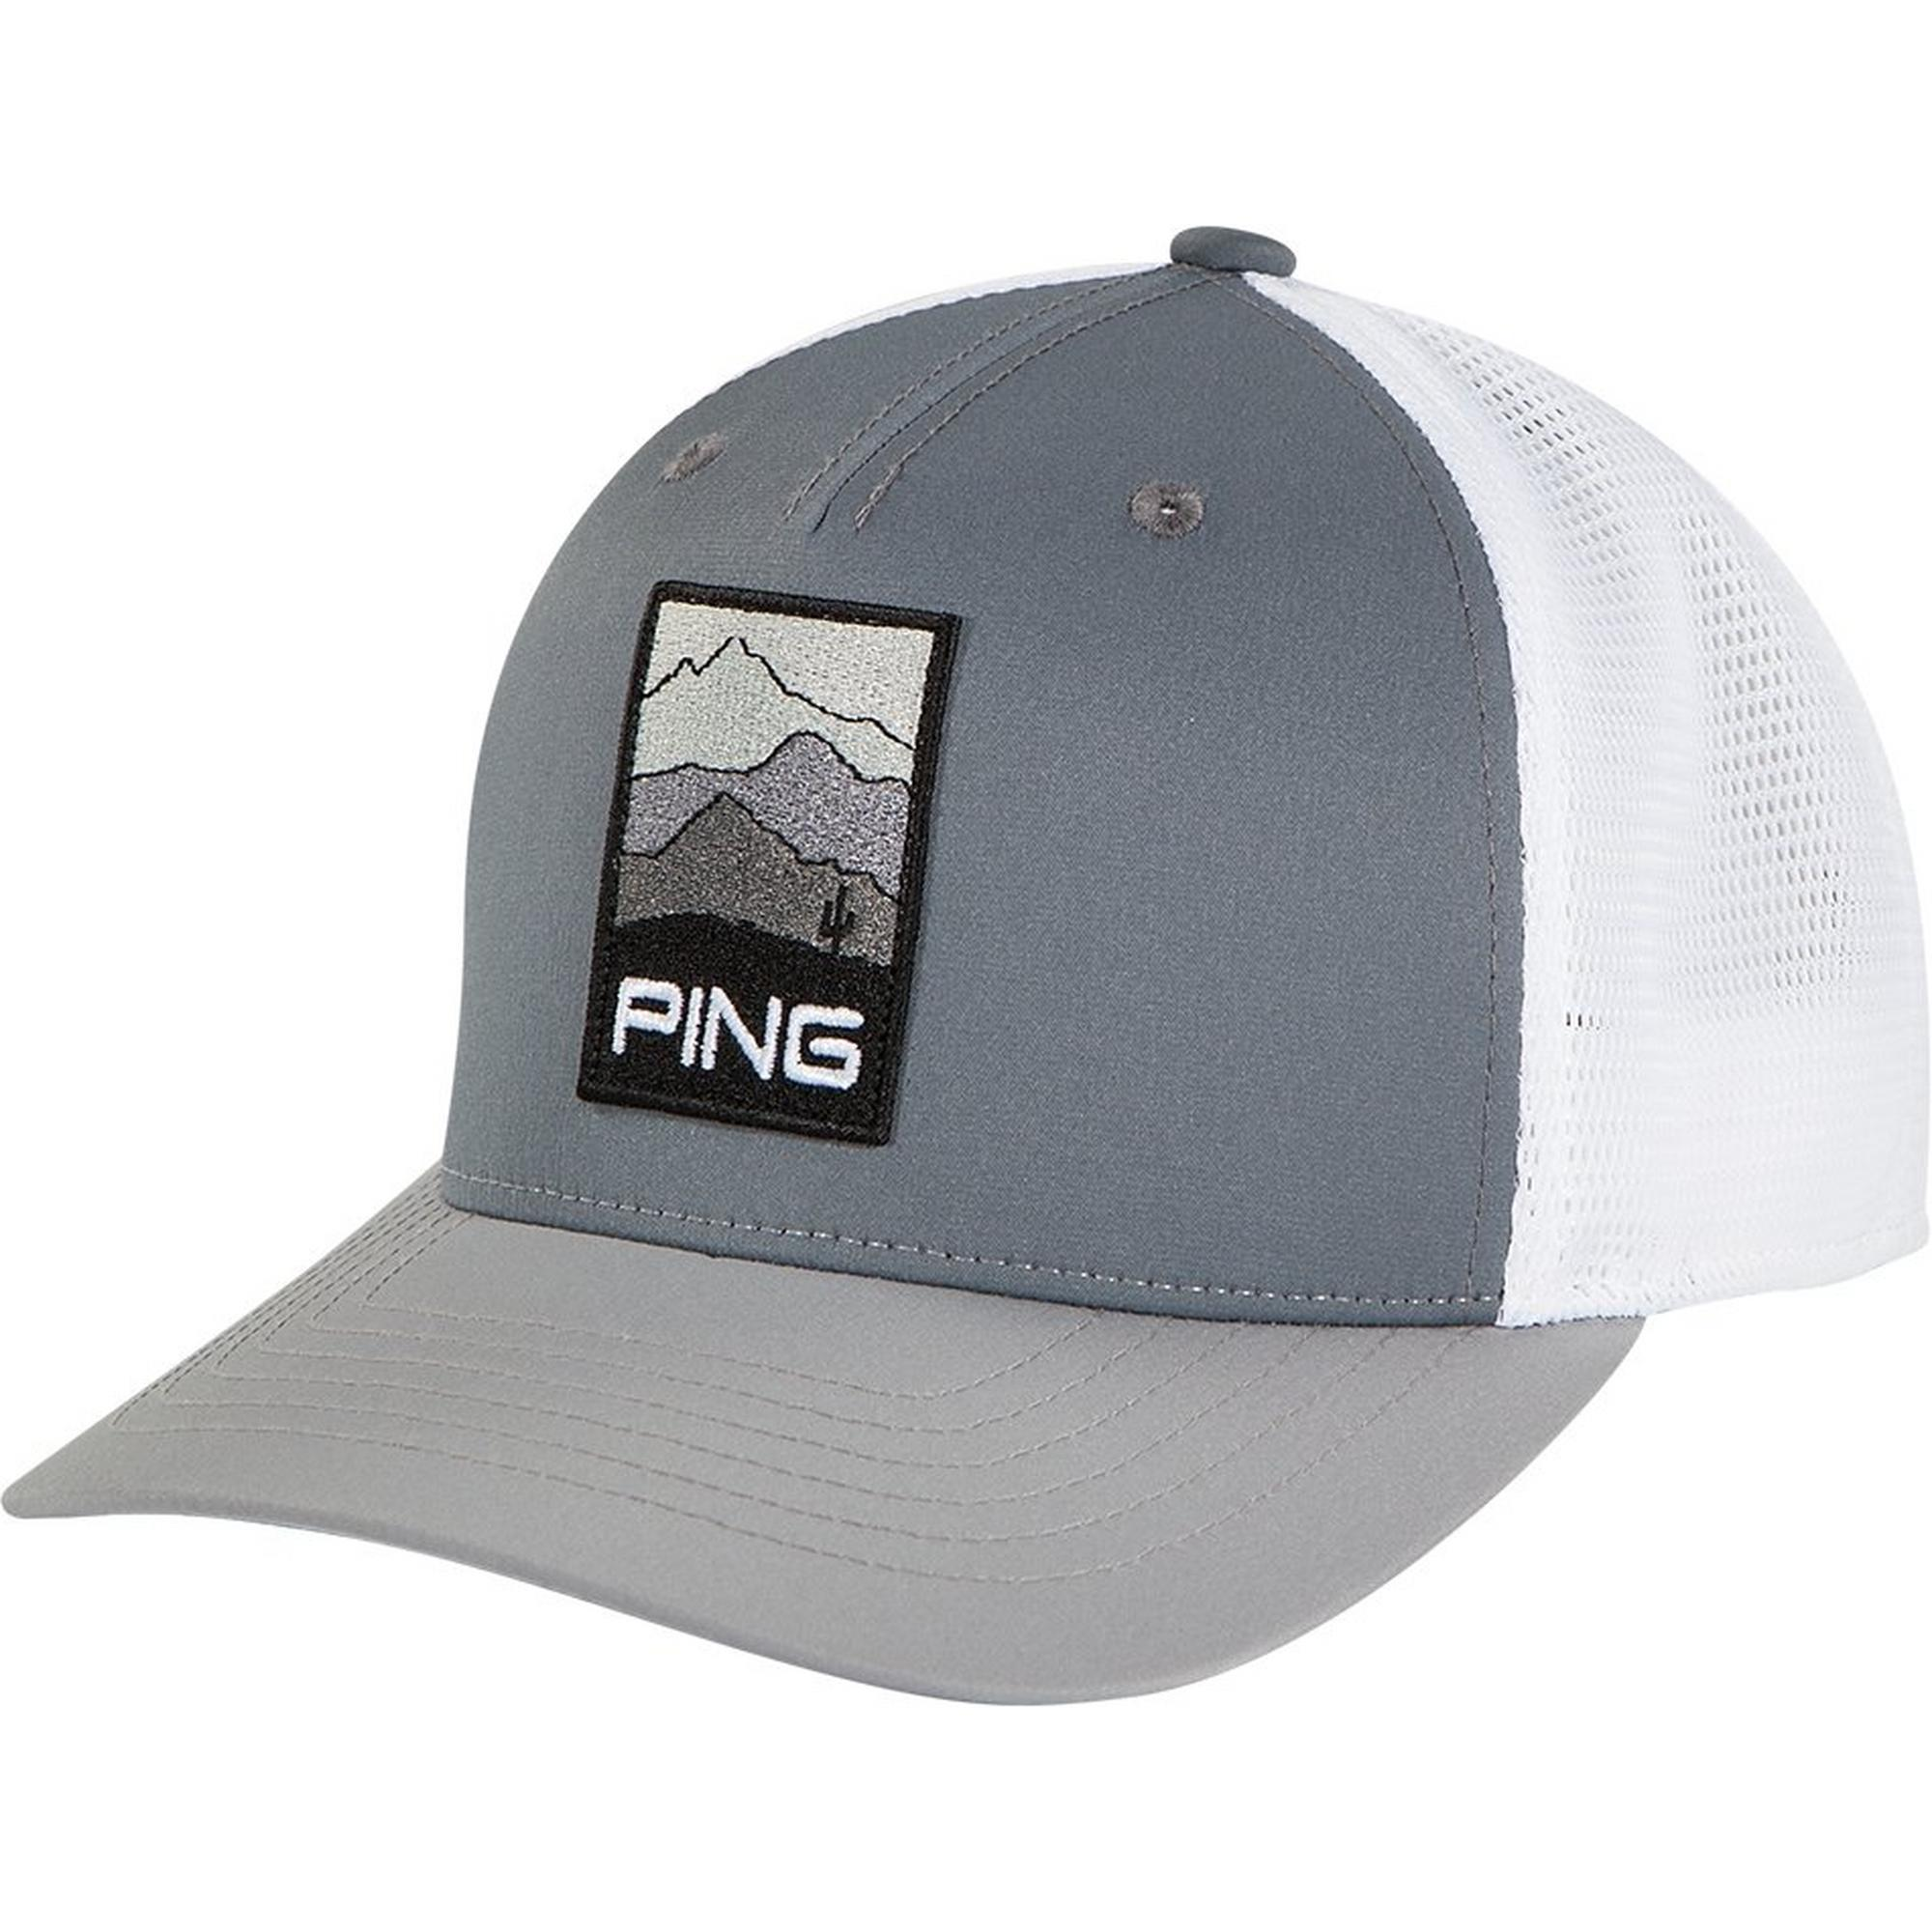 Men's Mountain Patch Cap